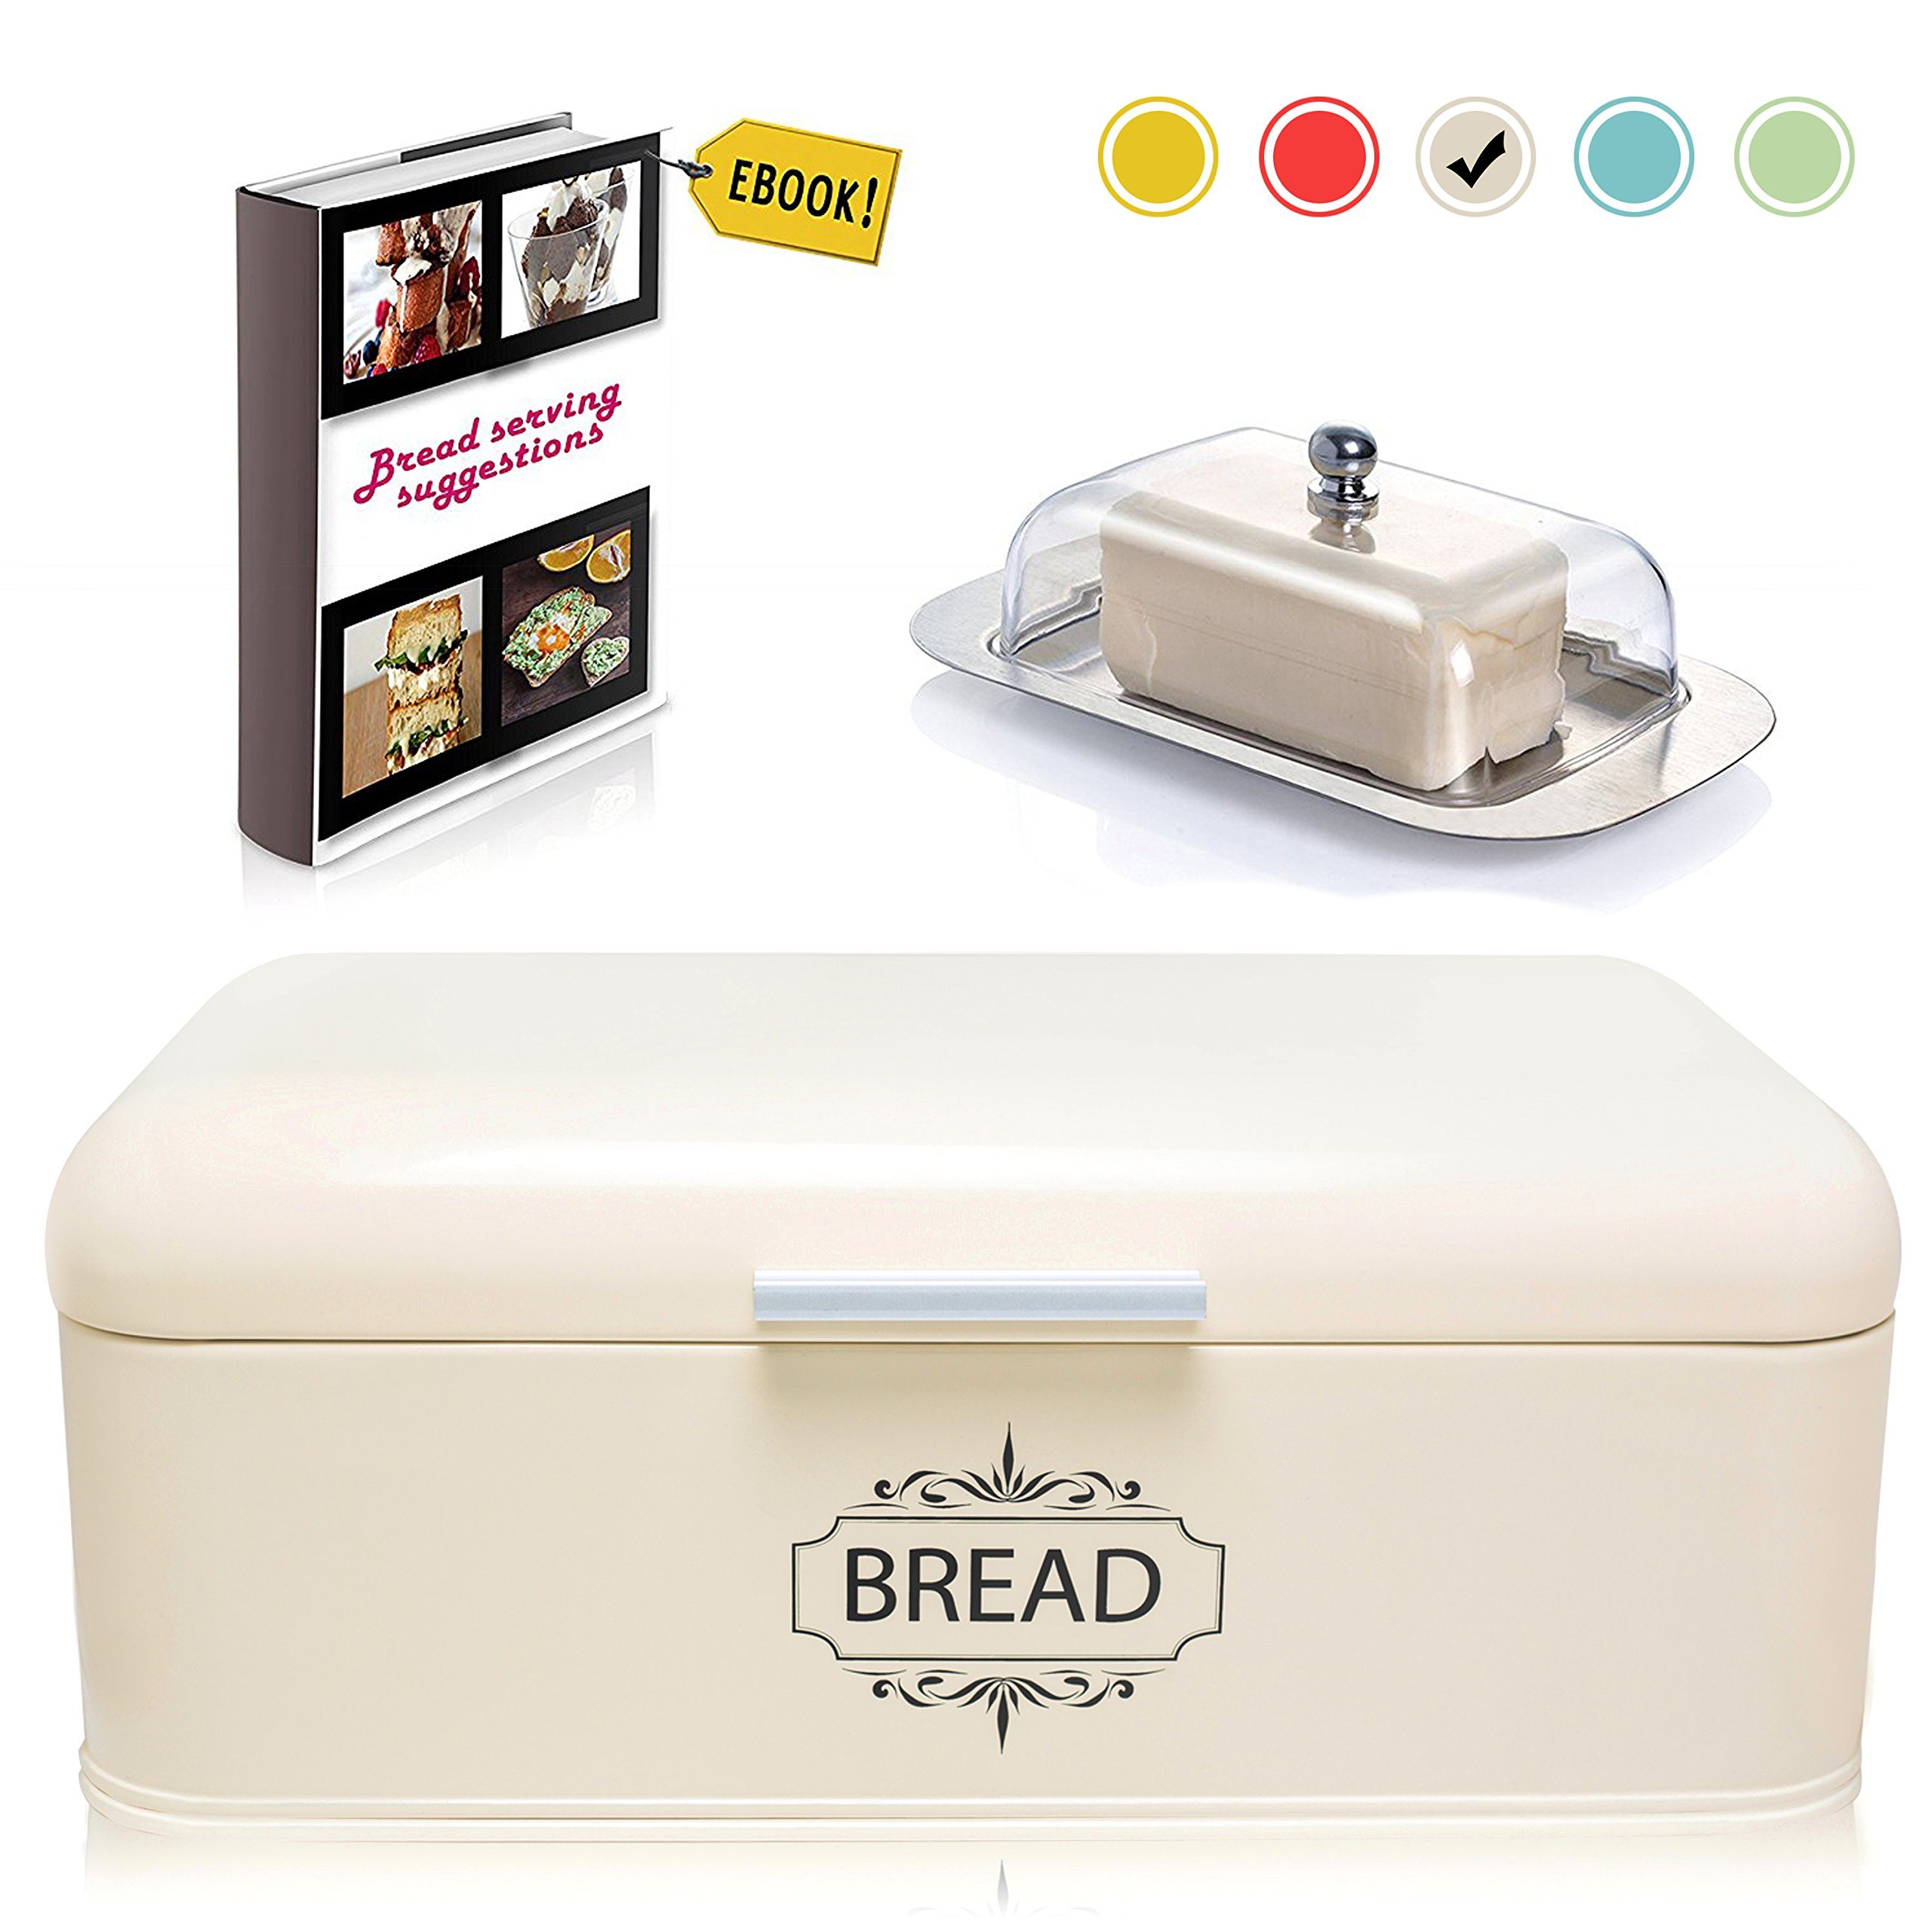 Vintage Bread Box For Kitchen Stainless Steel Metal in Retro Cream Off White + FREE Butter Dish + FREE Bread Serving Suggestions eBook 16.5'' x 9'' x 6.5'' Large Bread Bin storage by All-Green Products